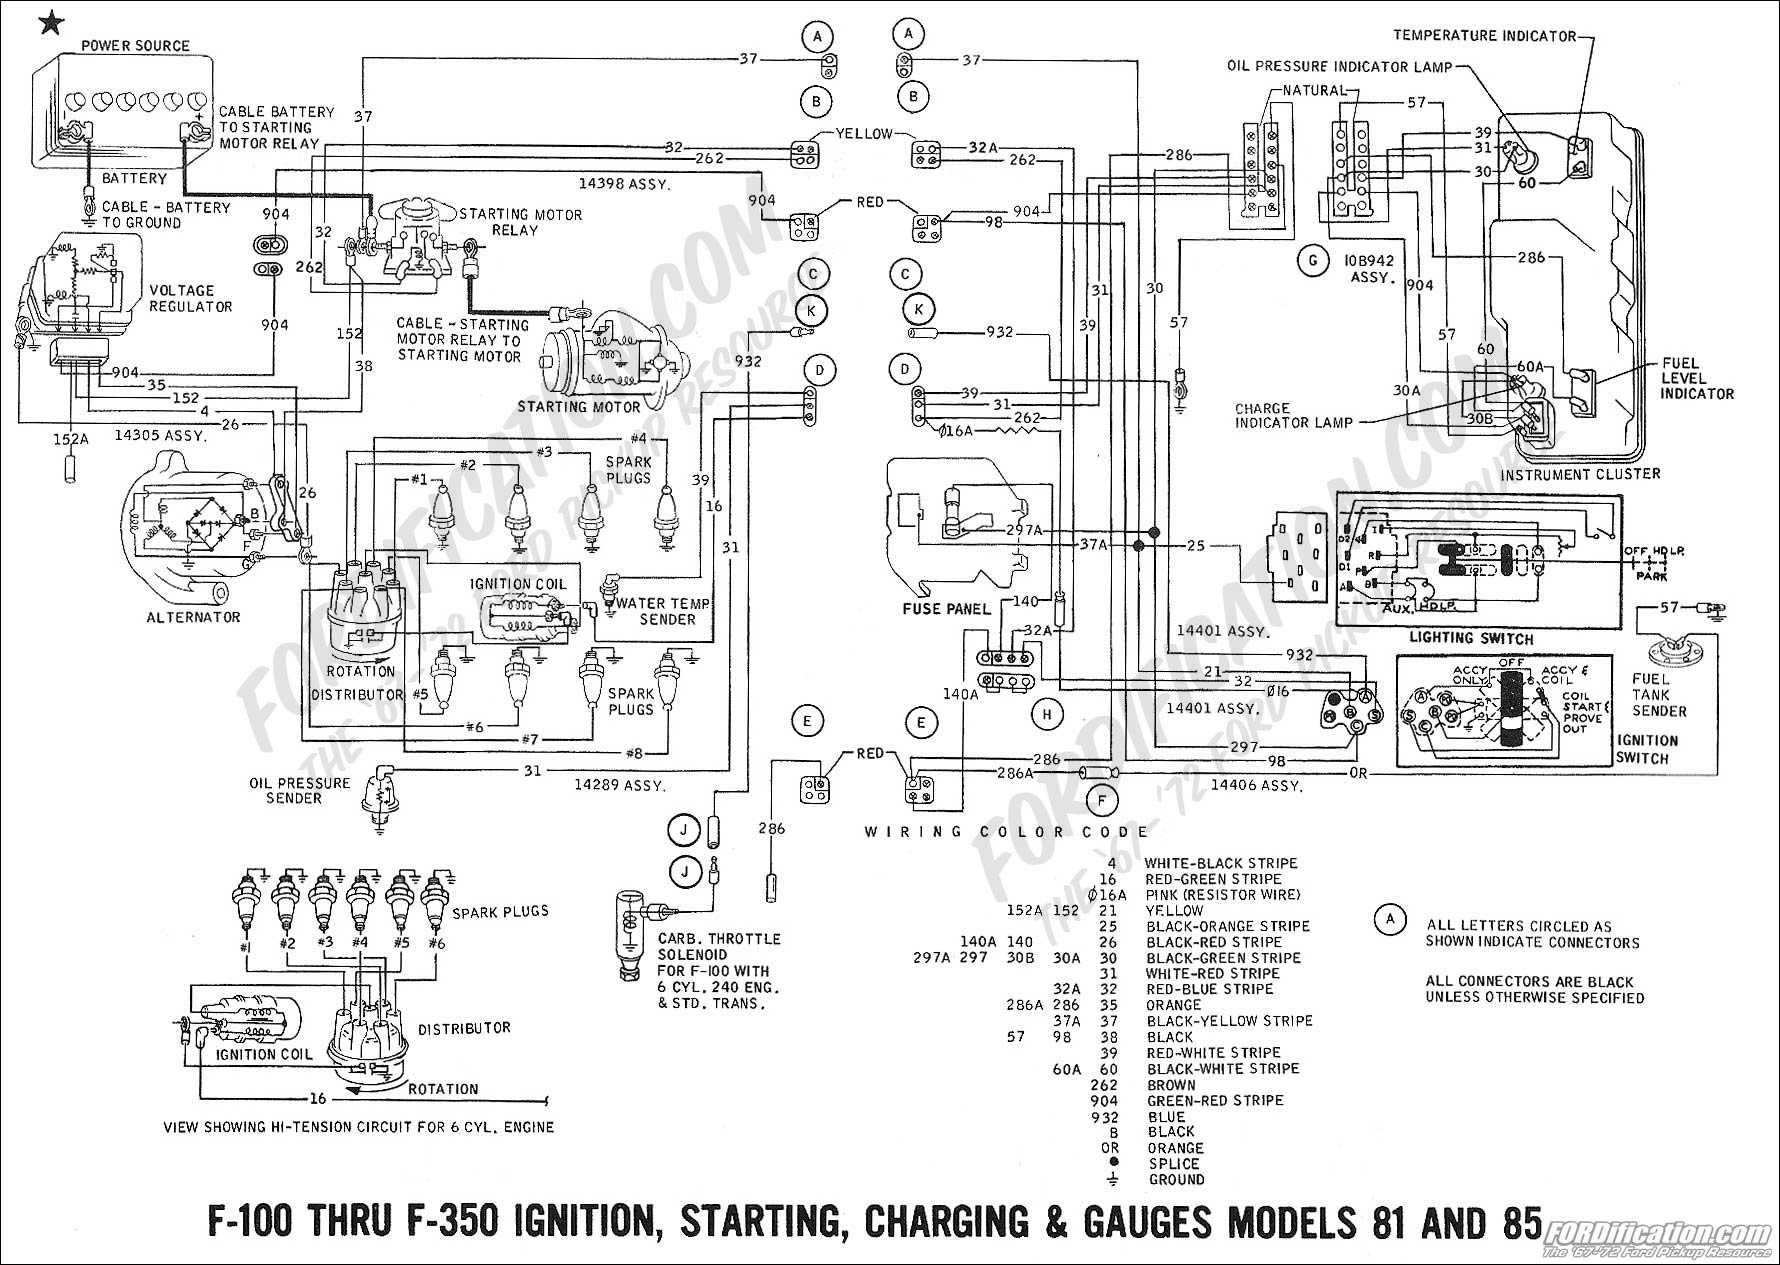 1966 Ford Wiring Diagram Data 63 Impala Ignition F100 Schema Diagrams Heater